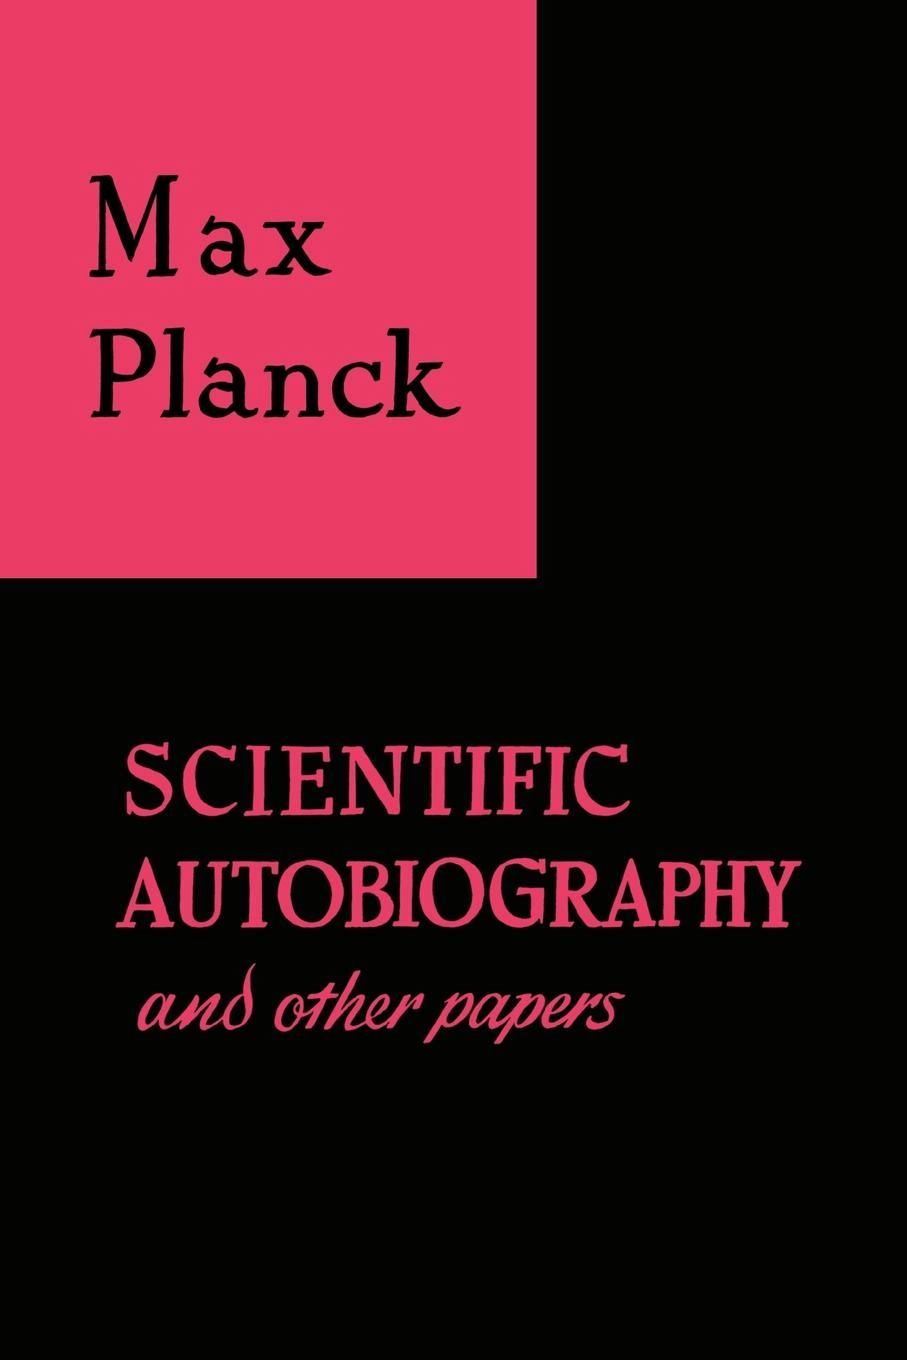 Scientific Autobiography and Other Papers